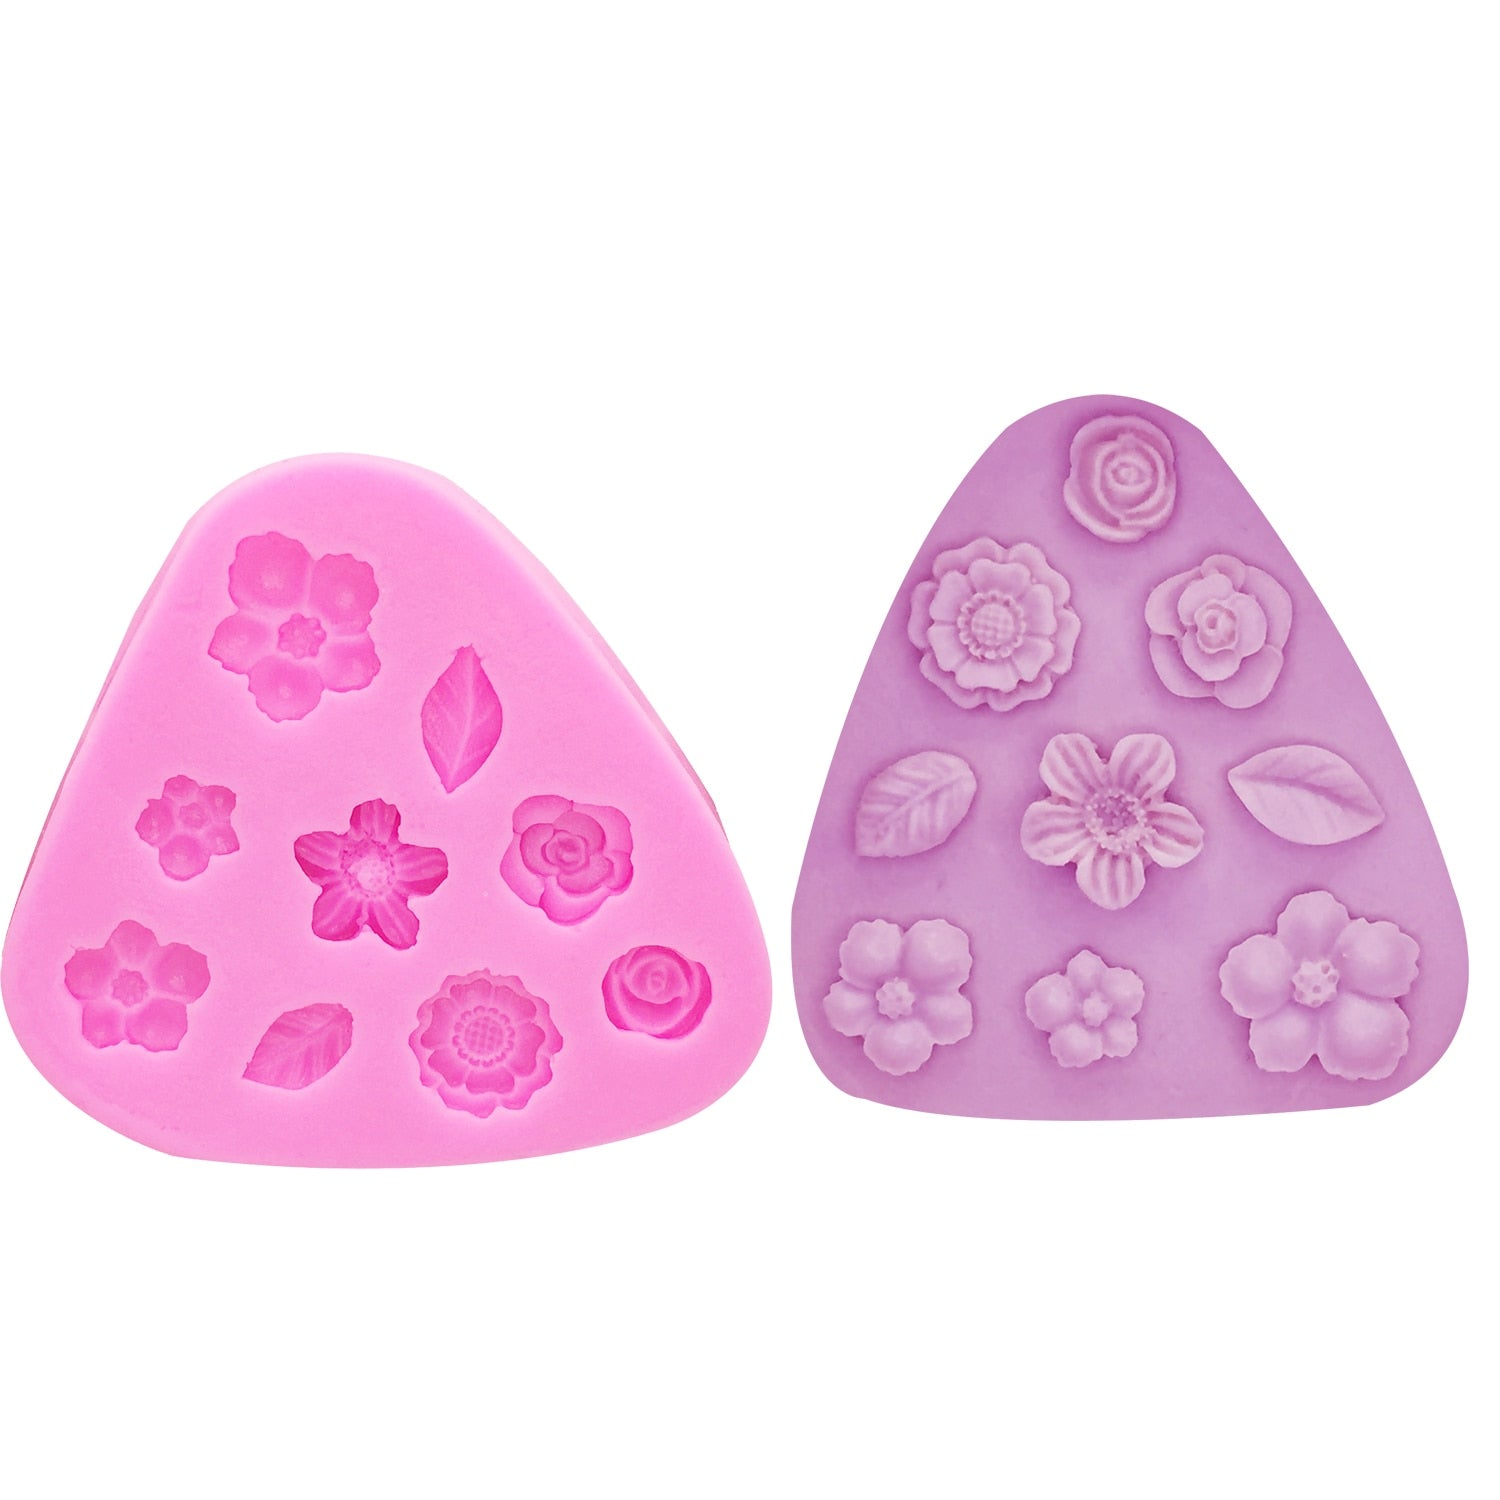 Buy OK-CHEF - 3D Leaves Silicone Mold flower Shape Mould for Candy,Chocolate,Ice,Flowers Cake decorating tools